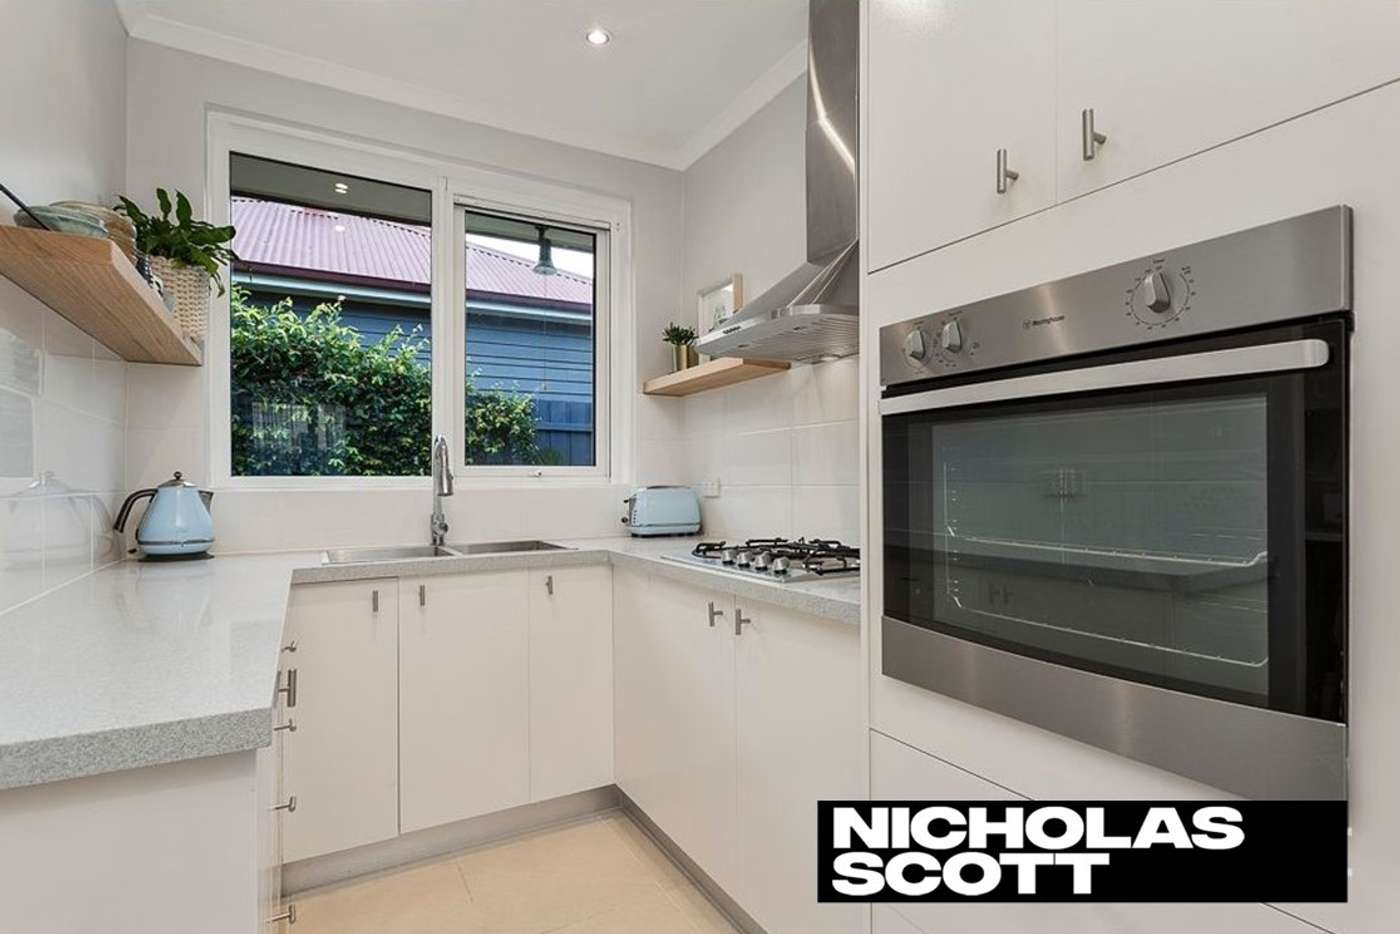 Main view of Homely villa listing, 1/69 Francis Street, Yarraville VIC 3013